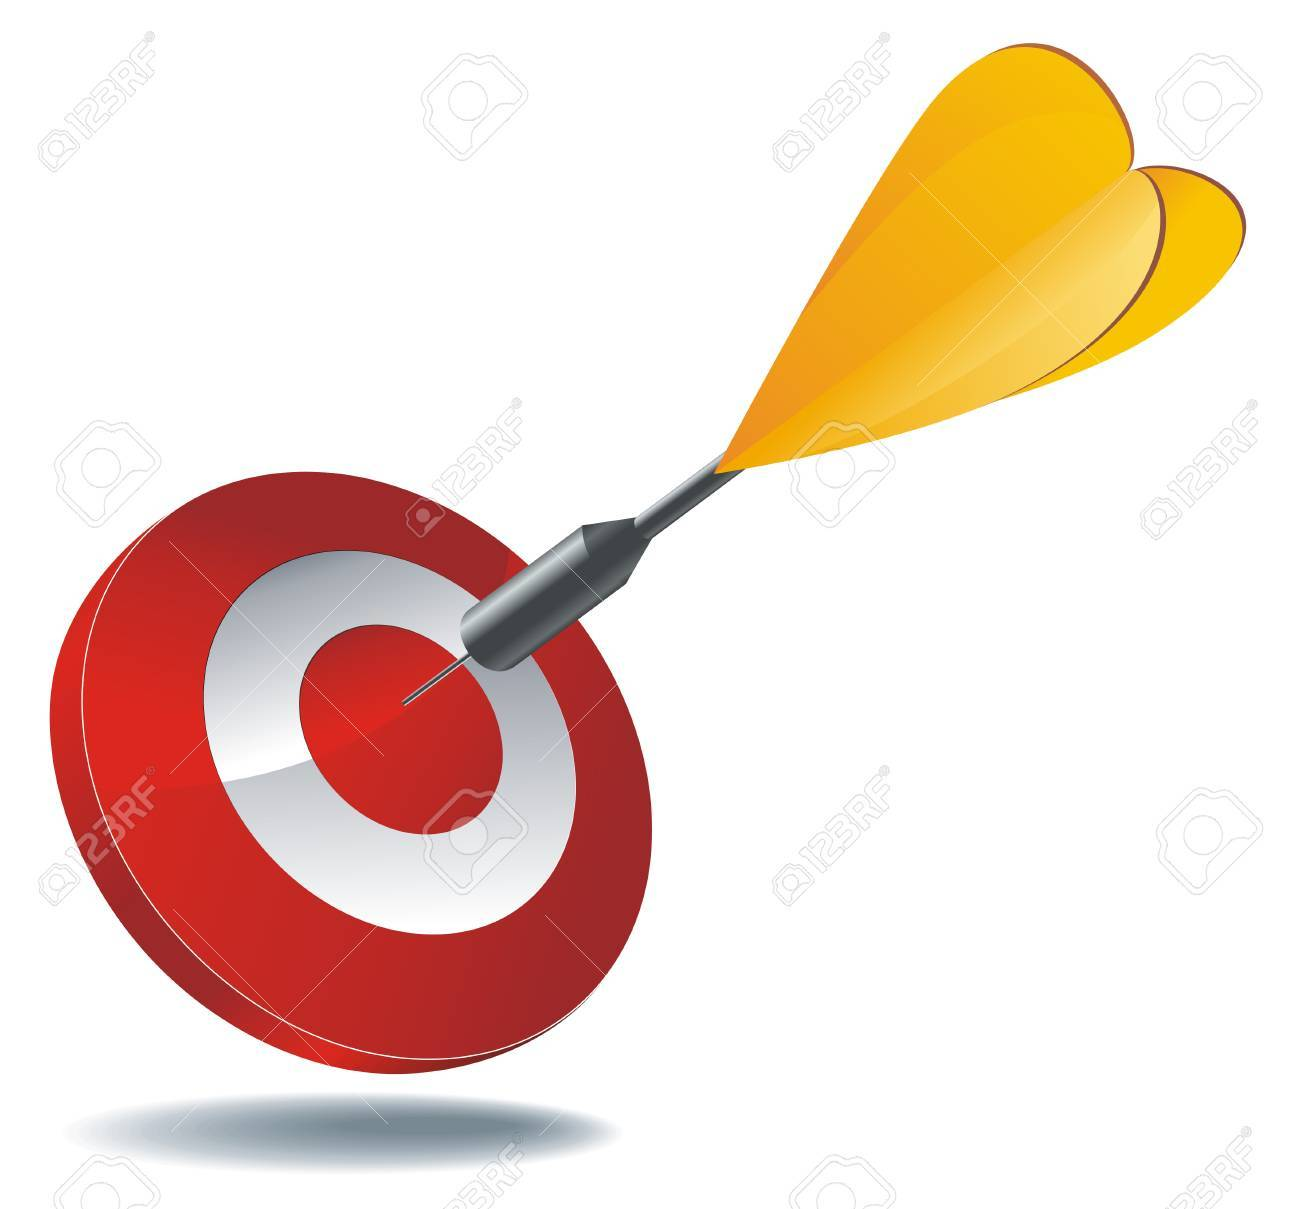 icon as red target with yellow dart arrow inside.